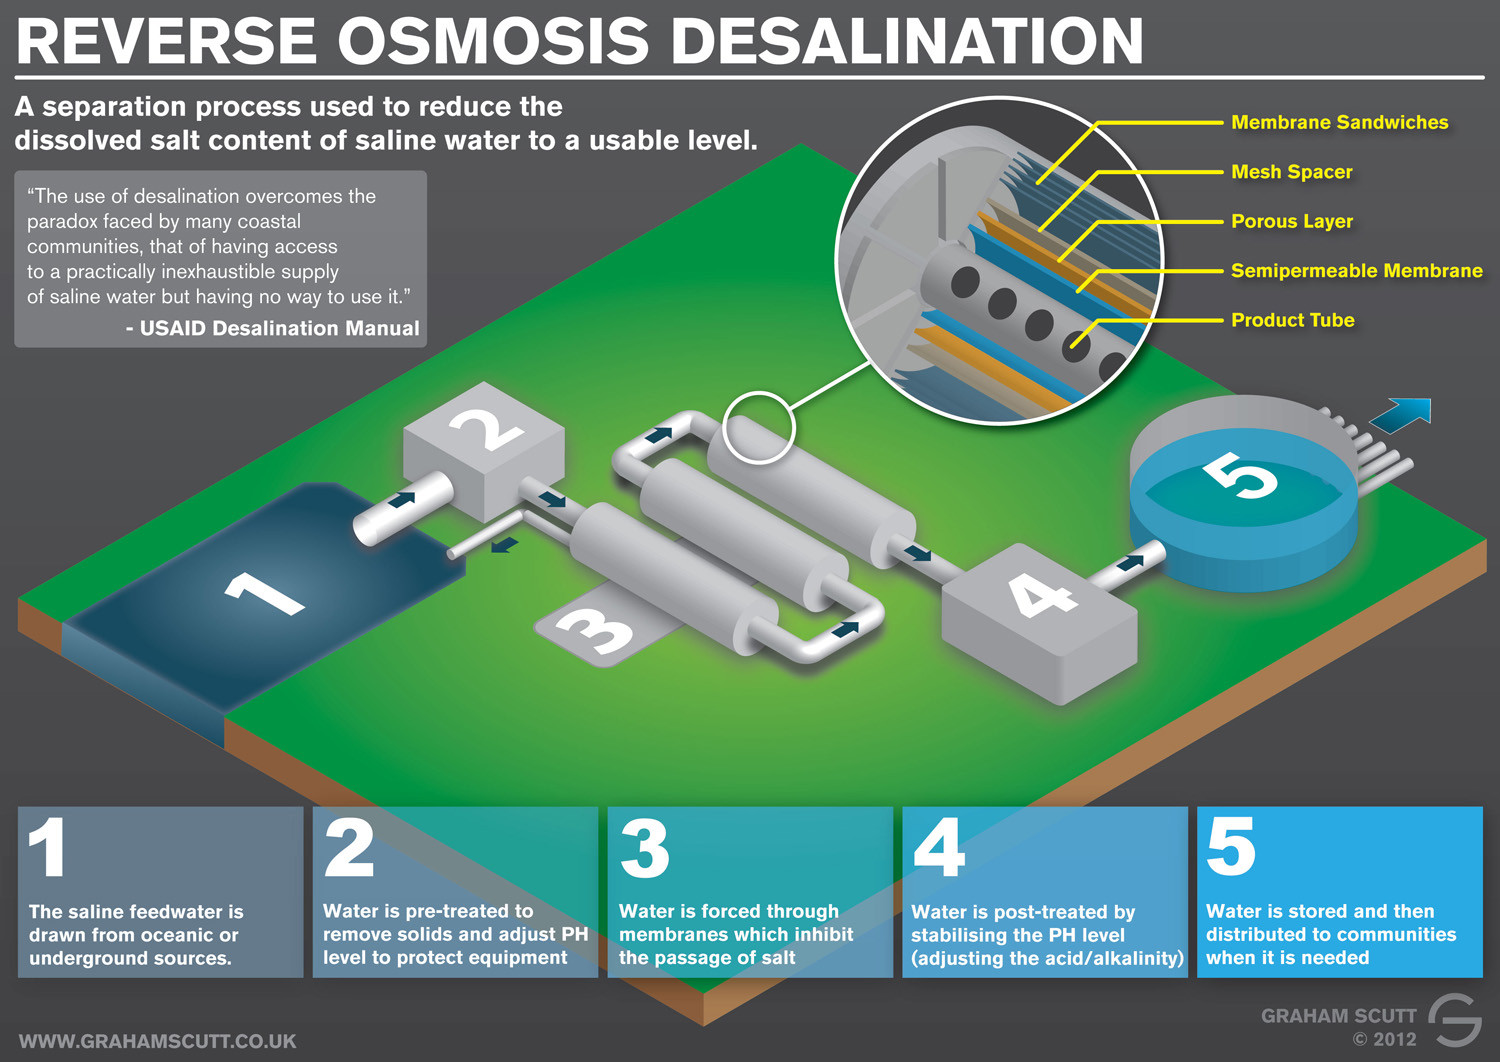 Reverse Osmosis Desalination Infographic